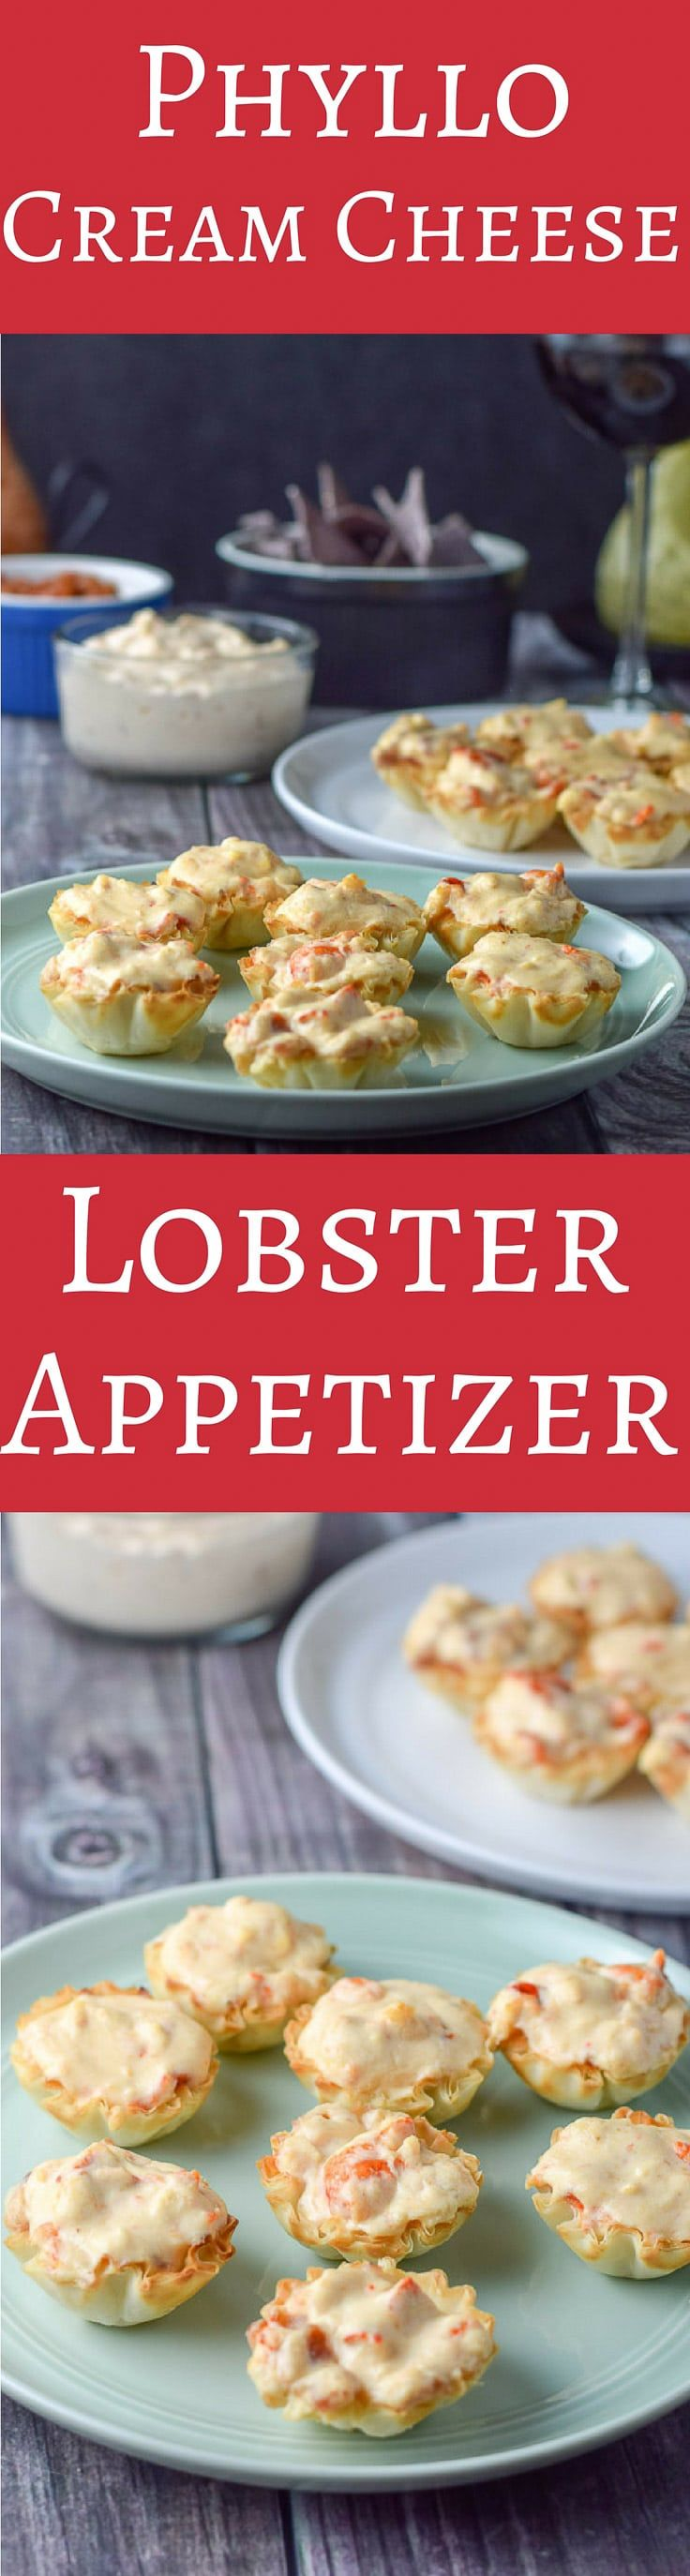 Phyllo Cream Cheese Lobster Appetizer is so good you will wonder where it's been all your life. Easy to make and so tasty, your guests will thank you!!  Or you can eat it by yourself and be thankful! via @dishesdelish